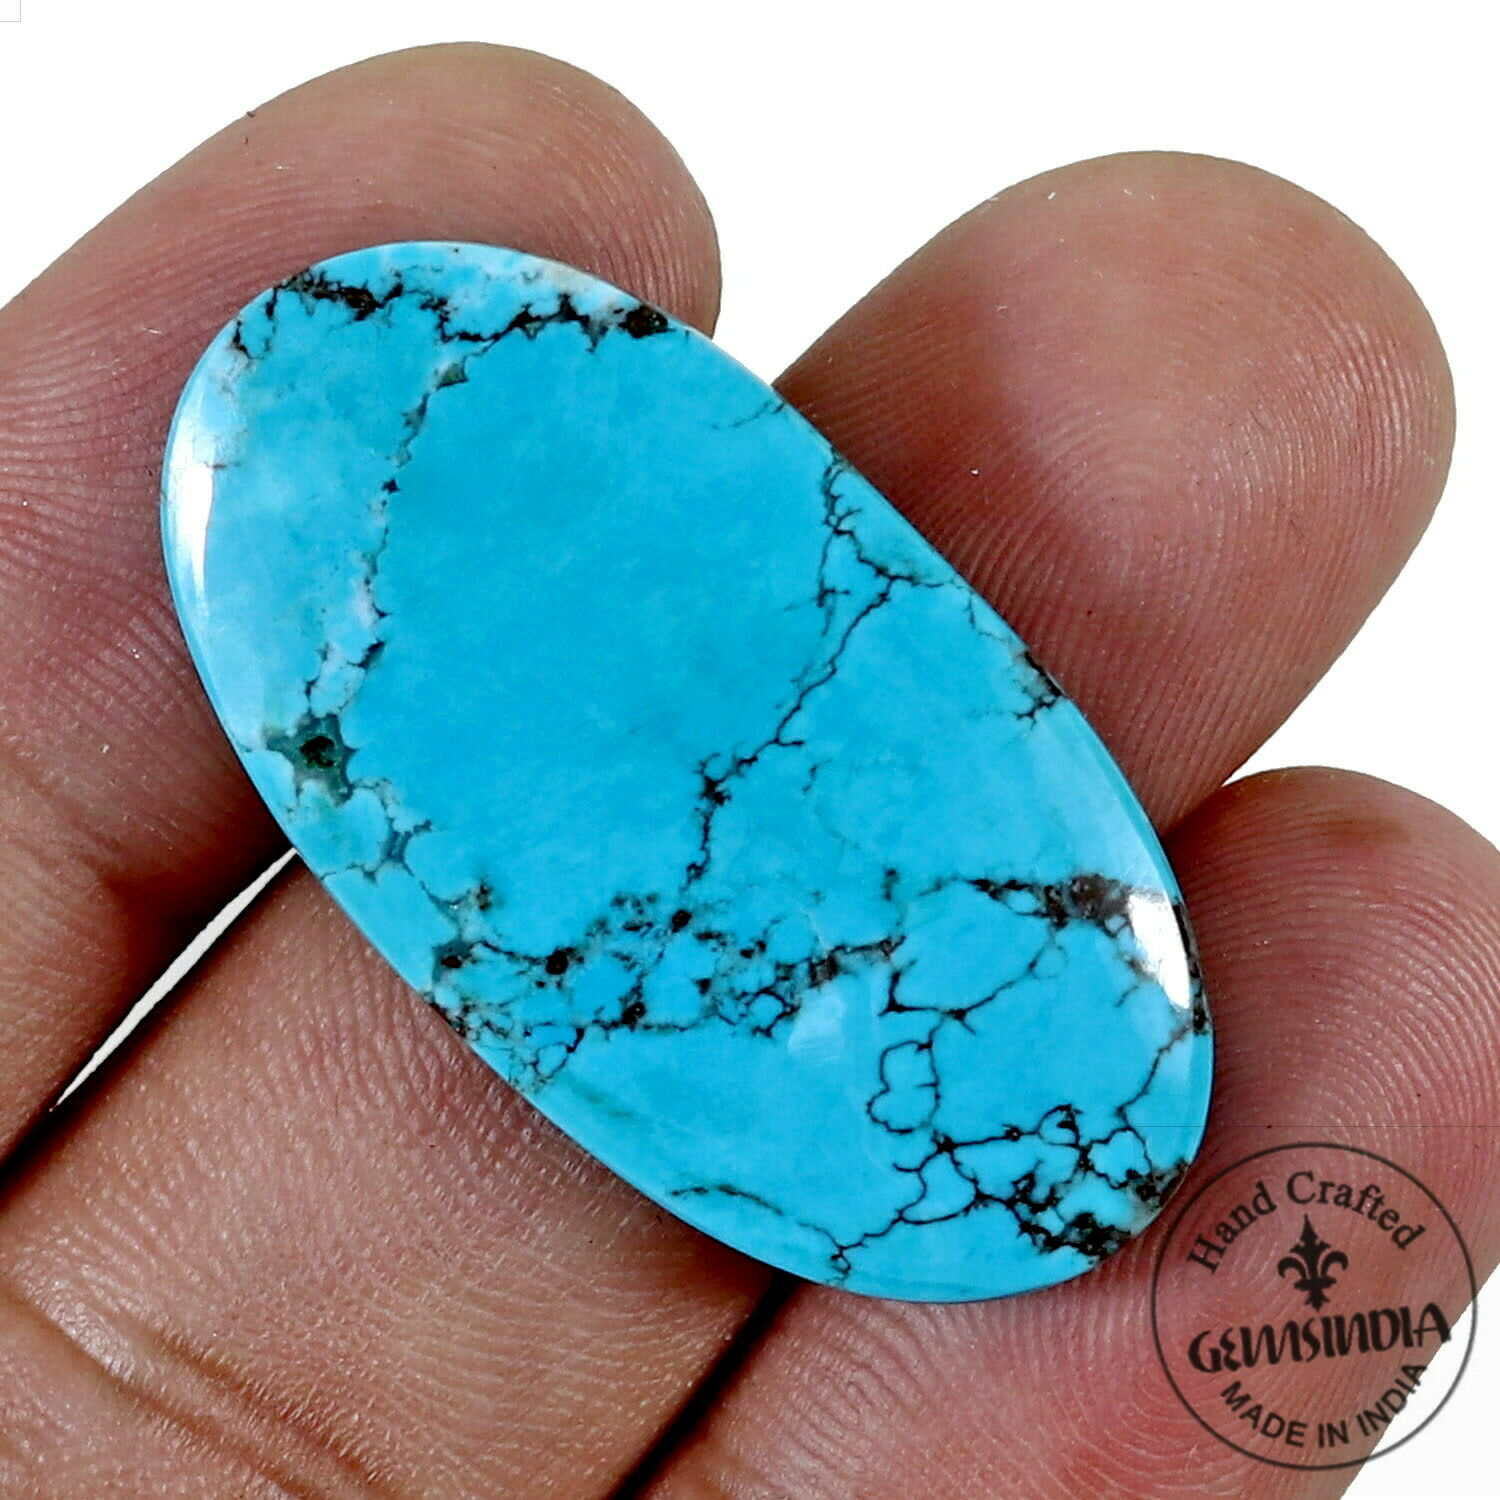 31 Cts Candelaria Turquoise Cabochon Gemstone,Genuine, Spiderweb Natural Beauty!